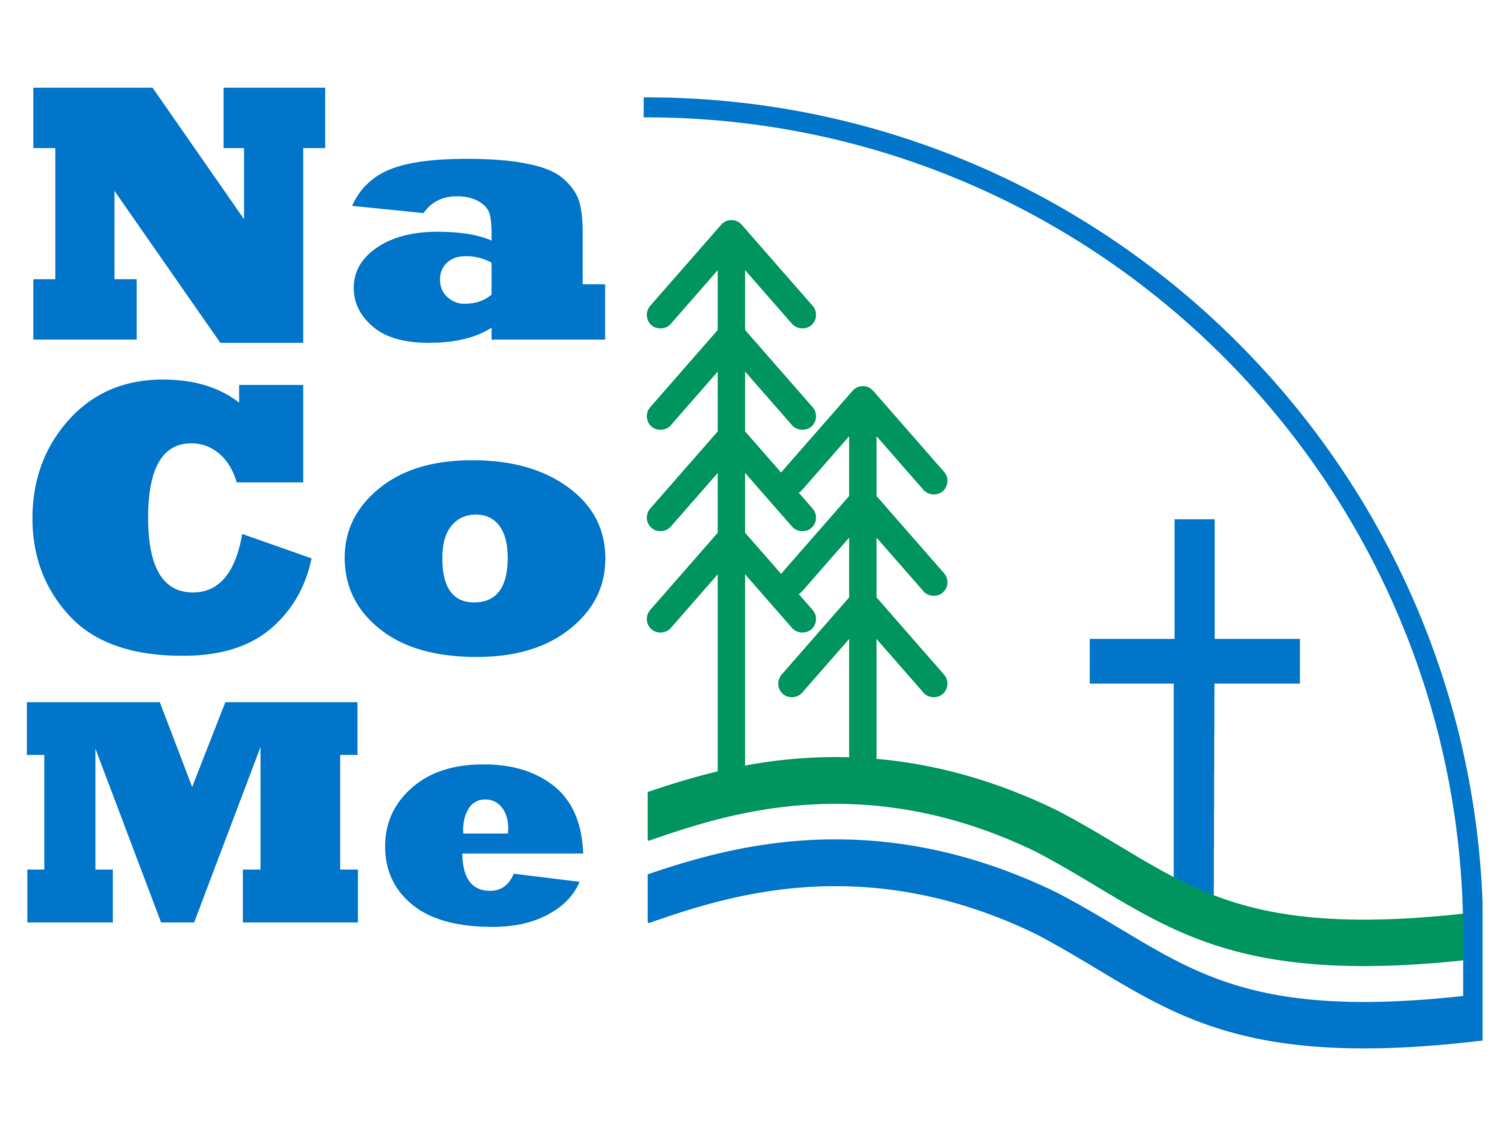 NaCoMe Camp & Retreat Center